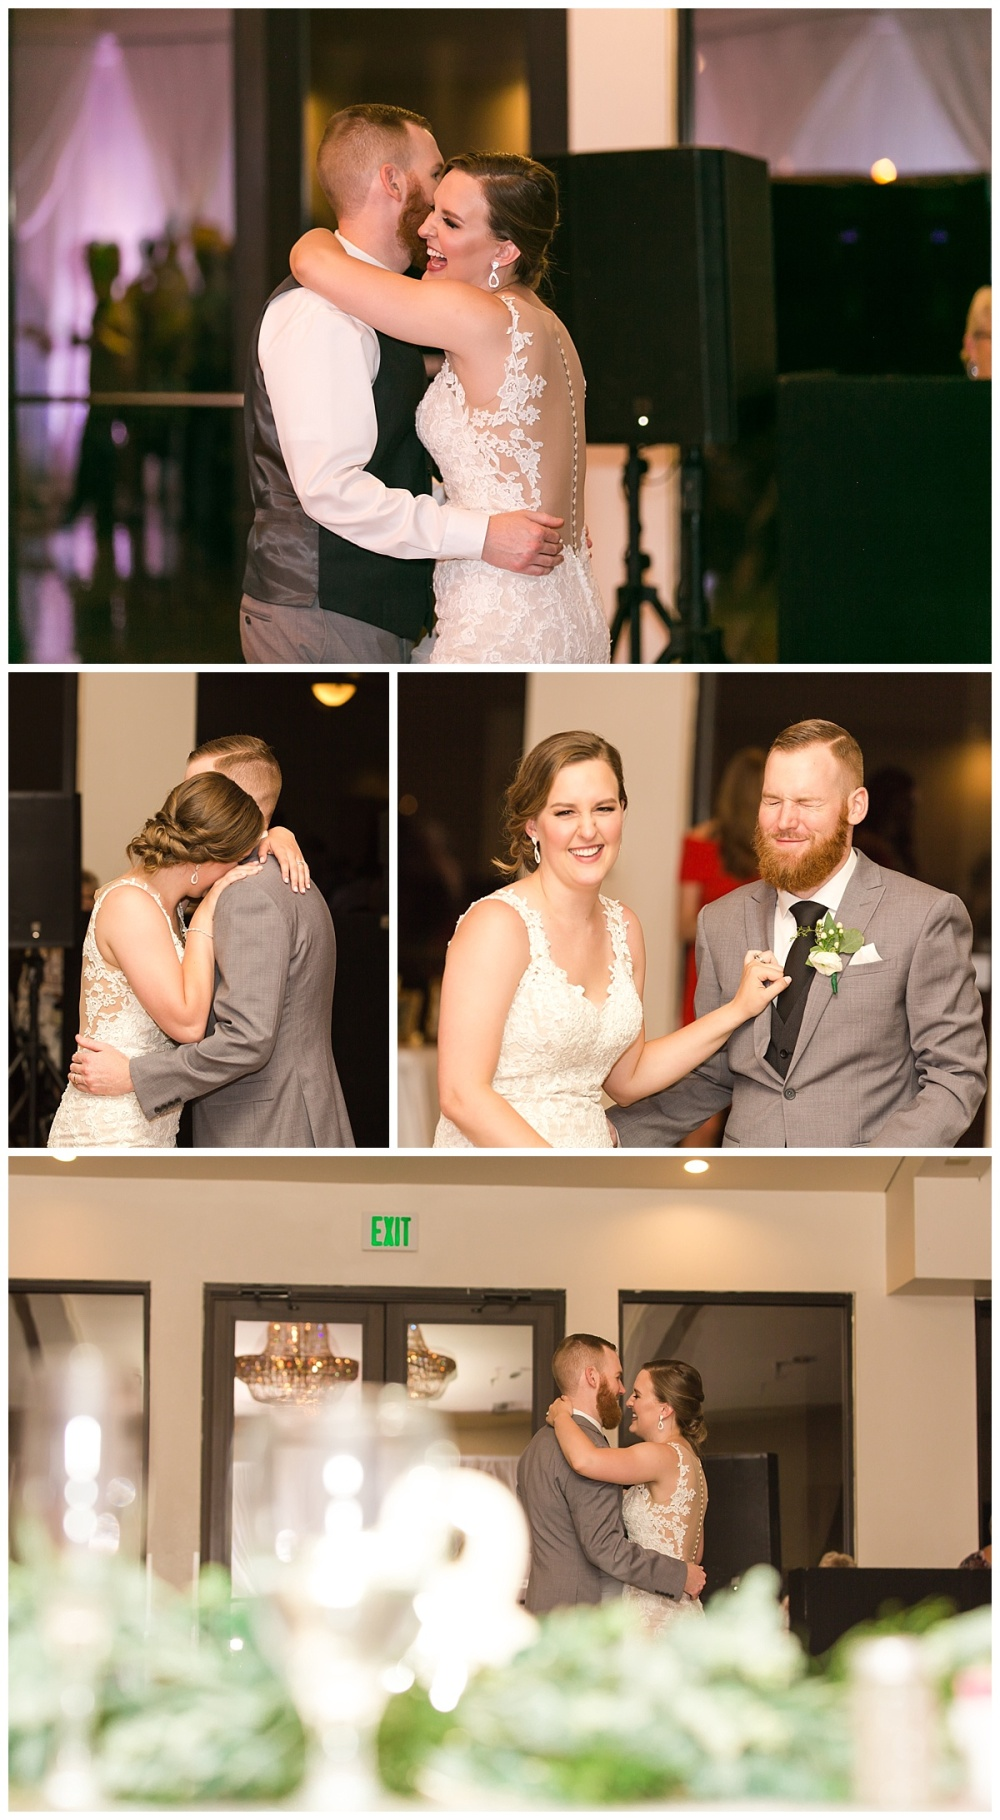 Carly-Barton-Photography-Wedding-Photos-Granberry-Hills-Event-Facility-Ryan-Chelsea-San-Antonio-Texas_0081.jpg